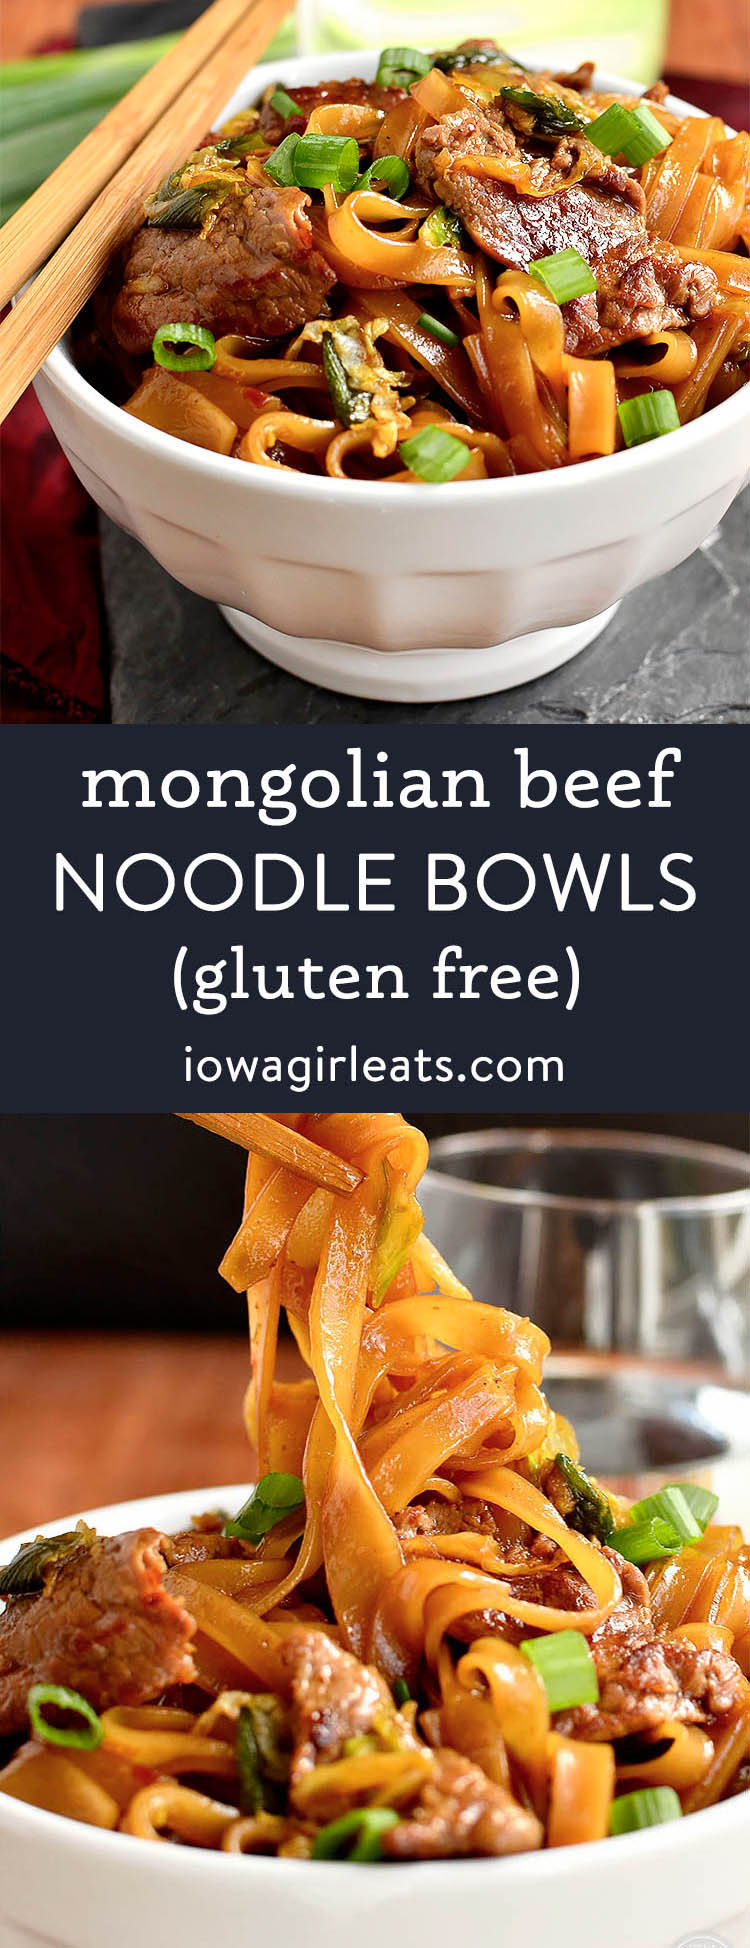 Photo collage of mongolian beef noodle bowls